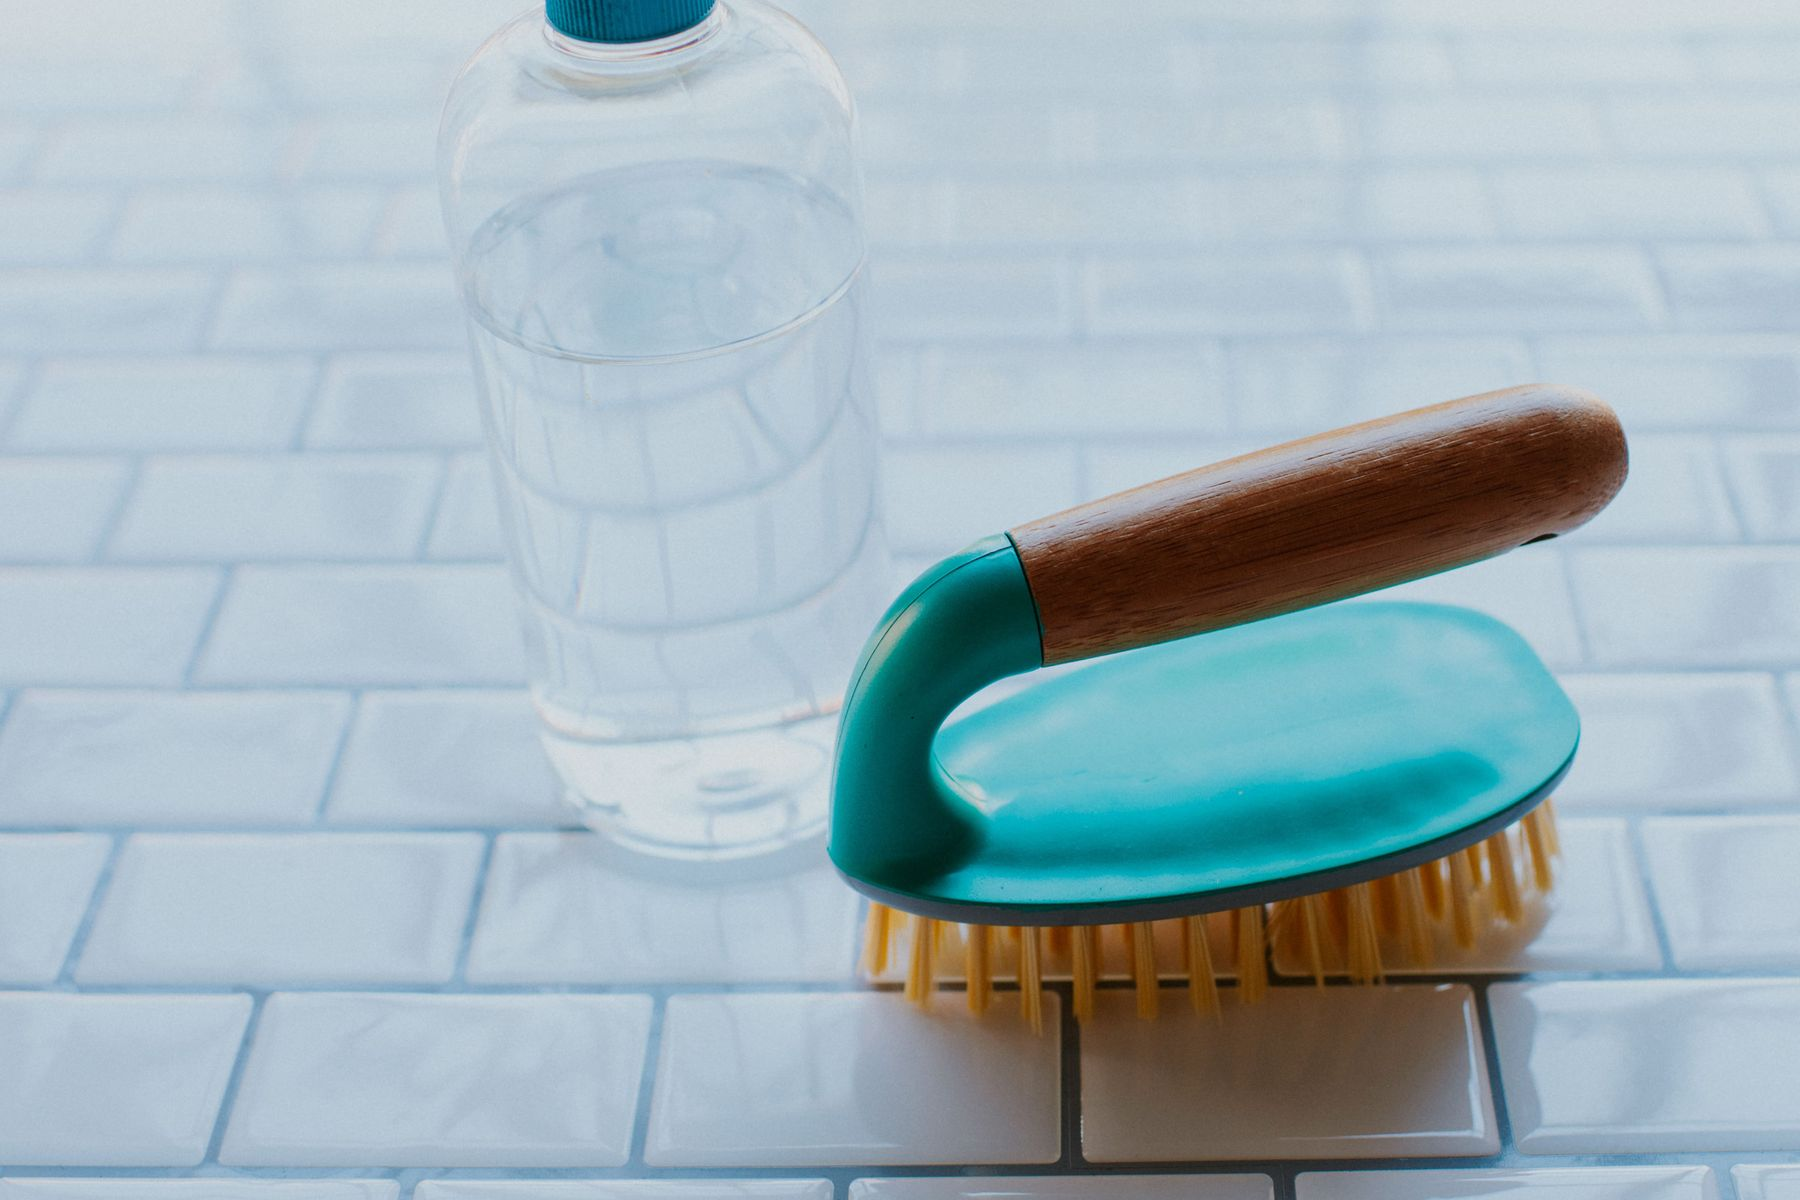 clean Victorian tiles: bottle of water and green scrubbing brush on white tiles